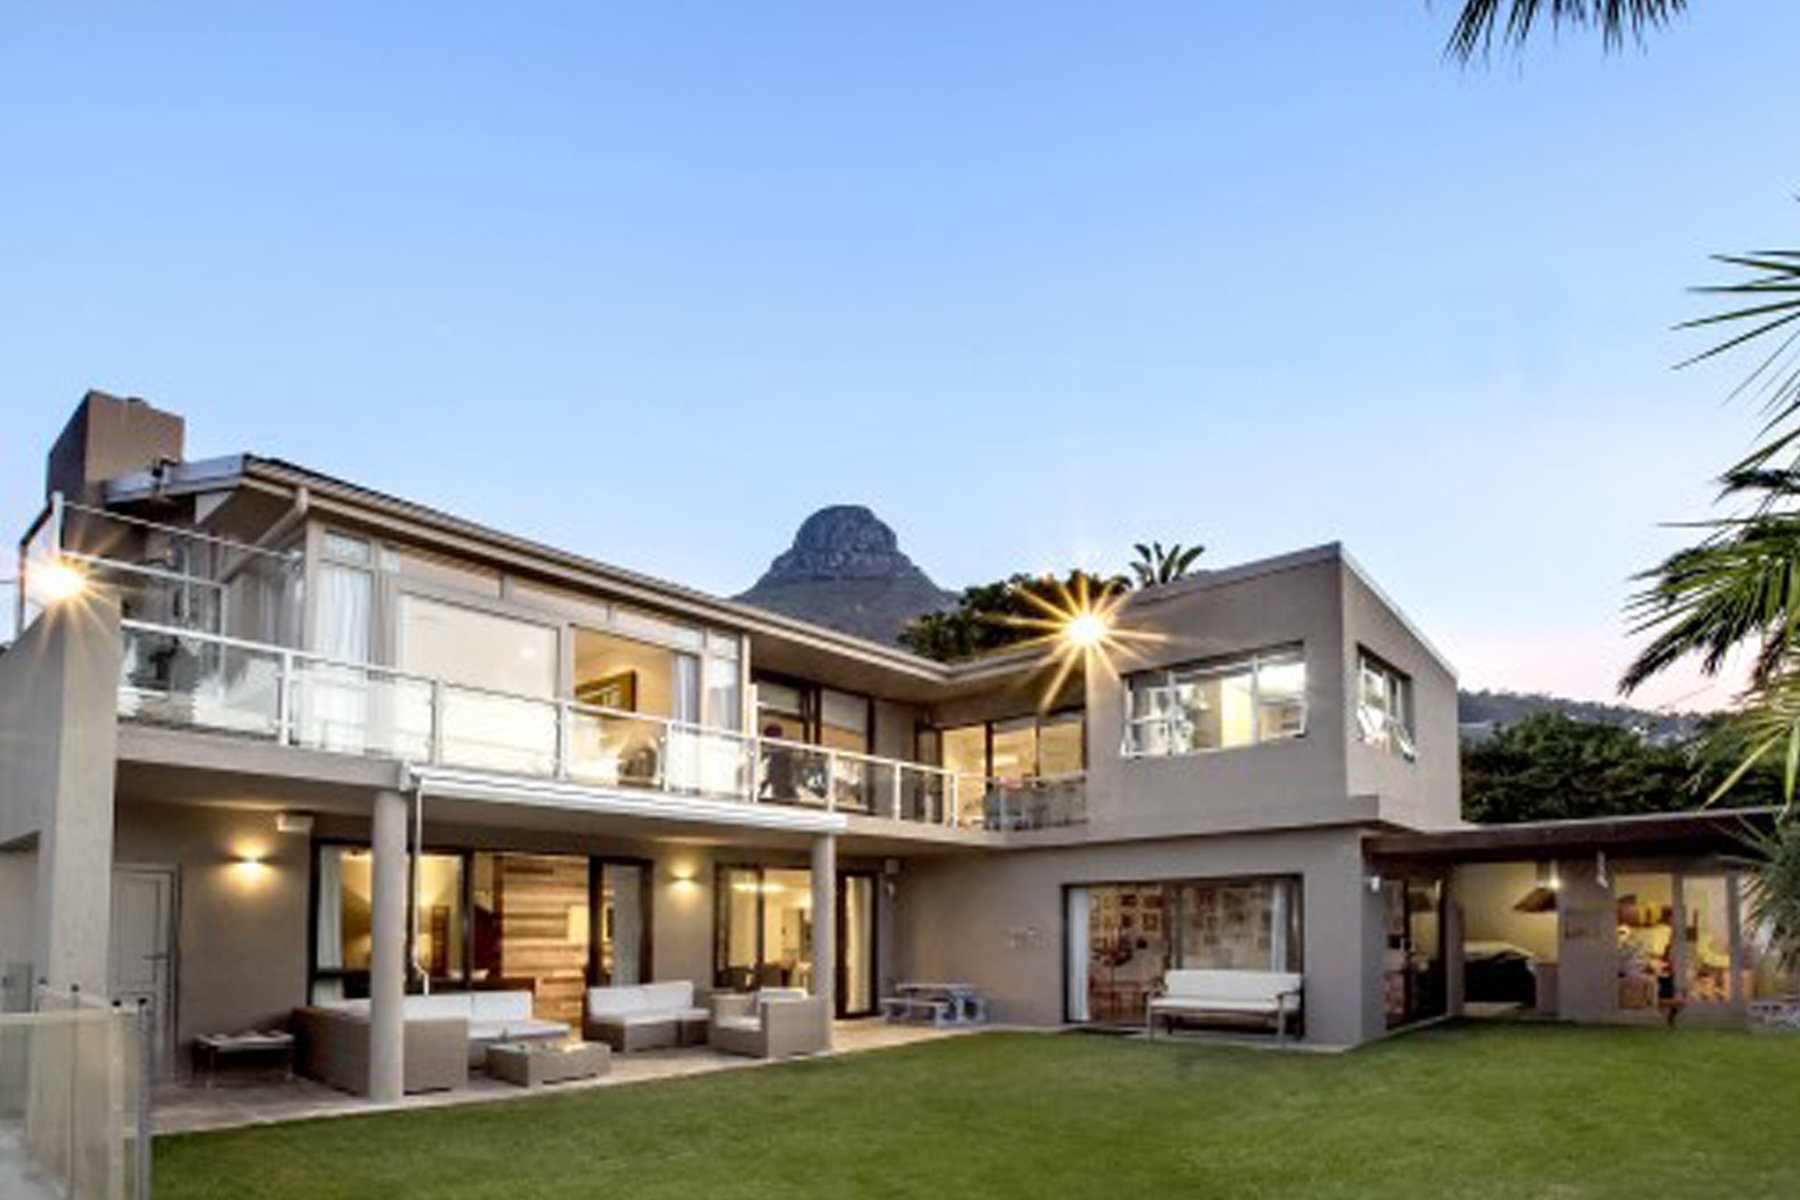 Maison unifamiliale pour l Vente à Outdoor pool and entertaining at its best Cape Town, Cap-Occidental 8005 Afrique Du Sud